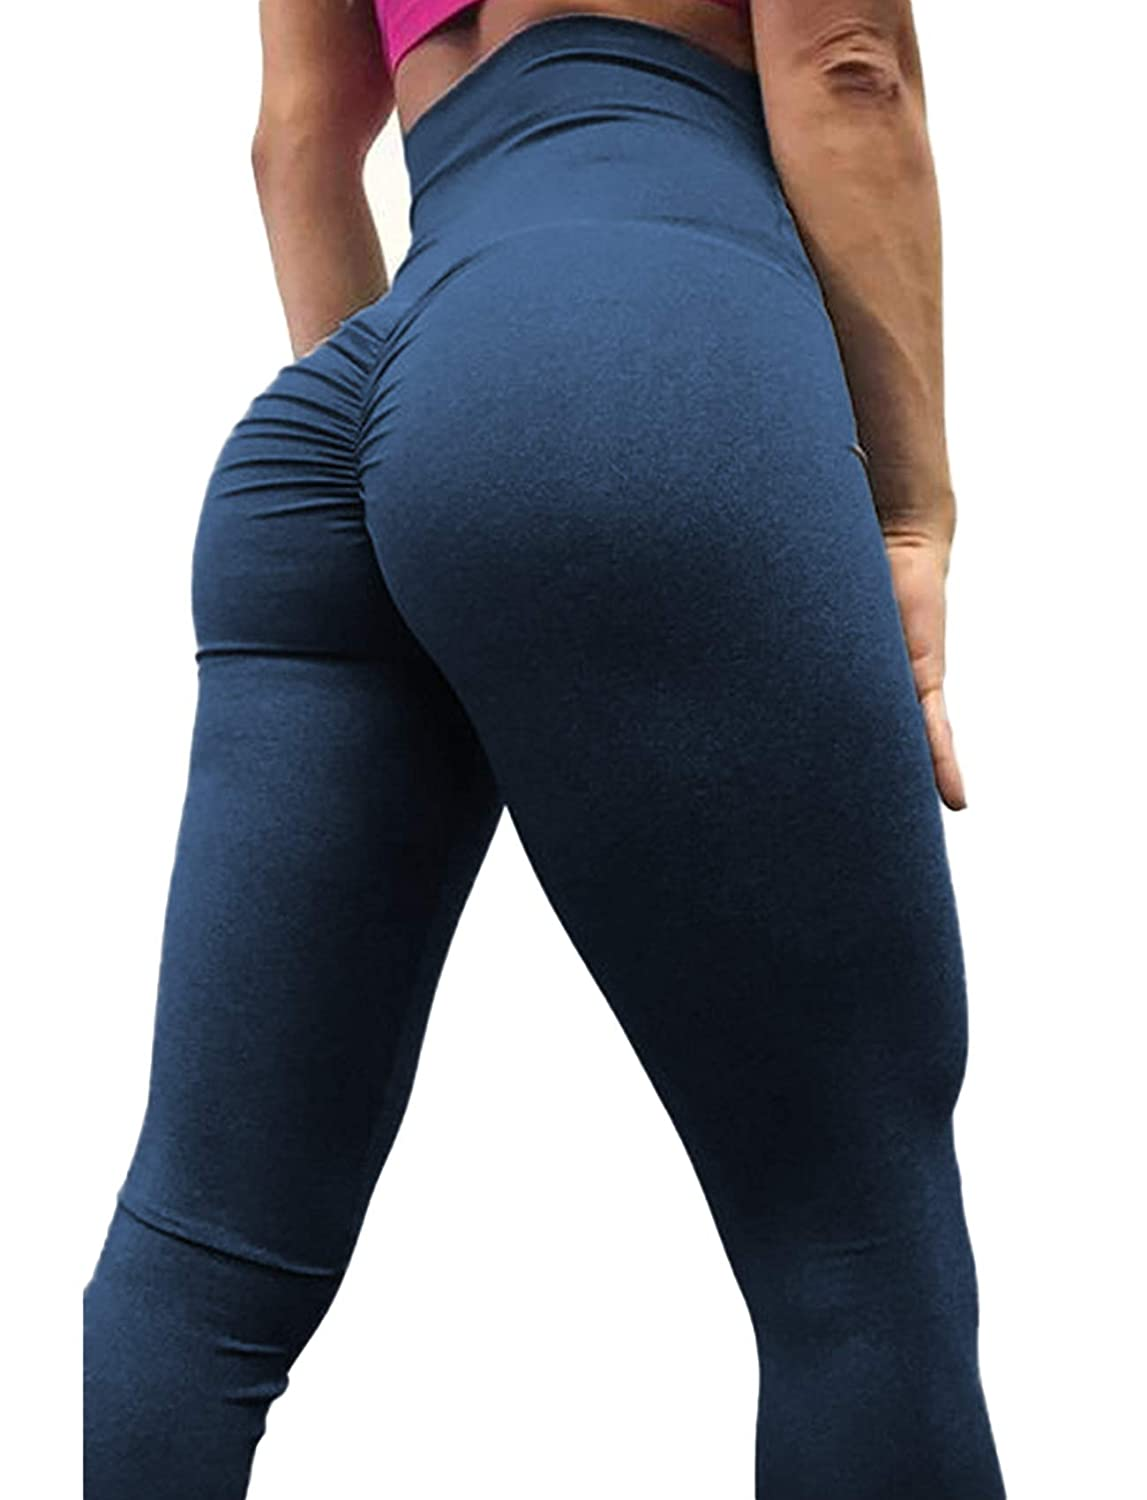 a8586d94bfd87e Product Information - High waist butt Lift Push Up Leggings; Featuring our  Amazing Scrunch Booty to make your curves pop!Sexy Yoga Pants Shapewear  Skinny ...